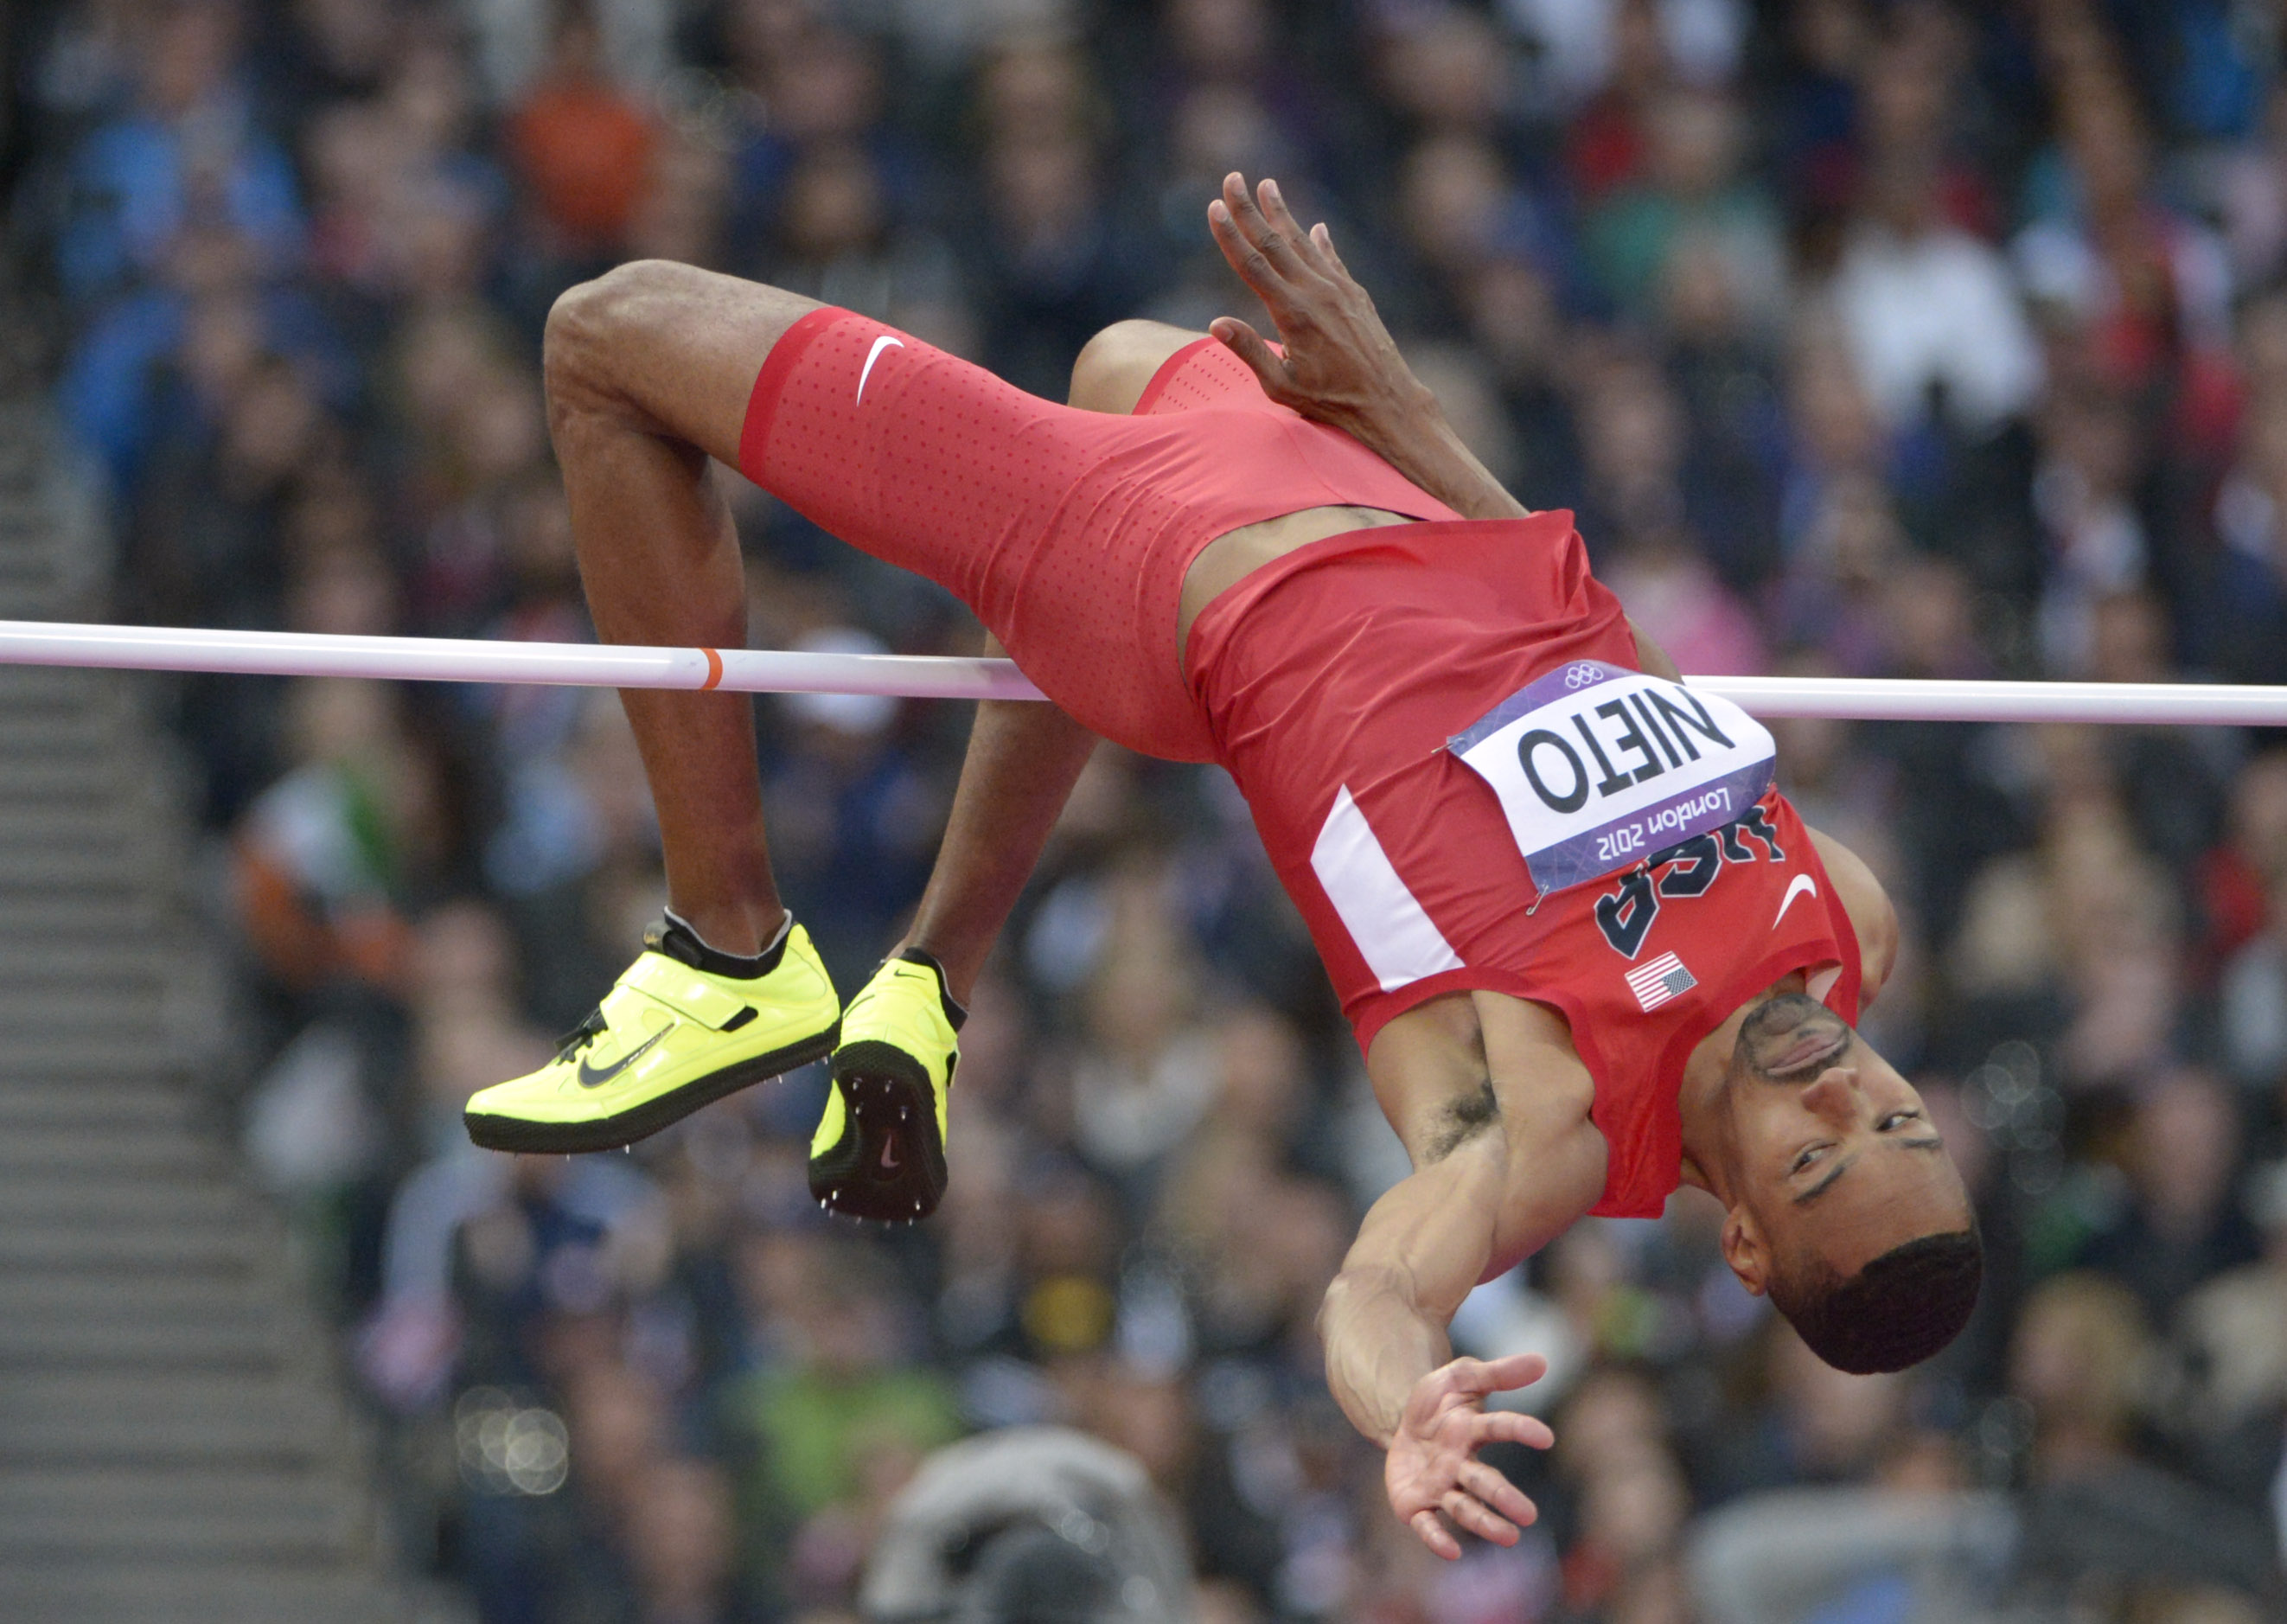 olympic high jumper paralyzed after backflip mishap